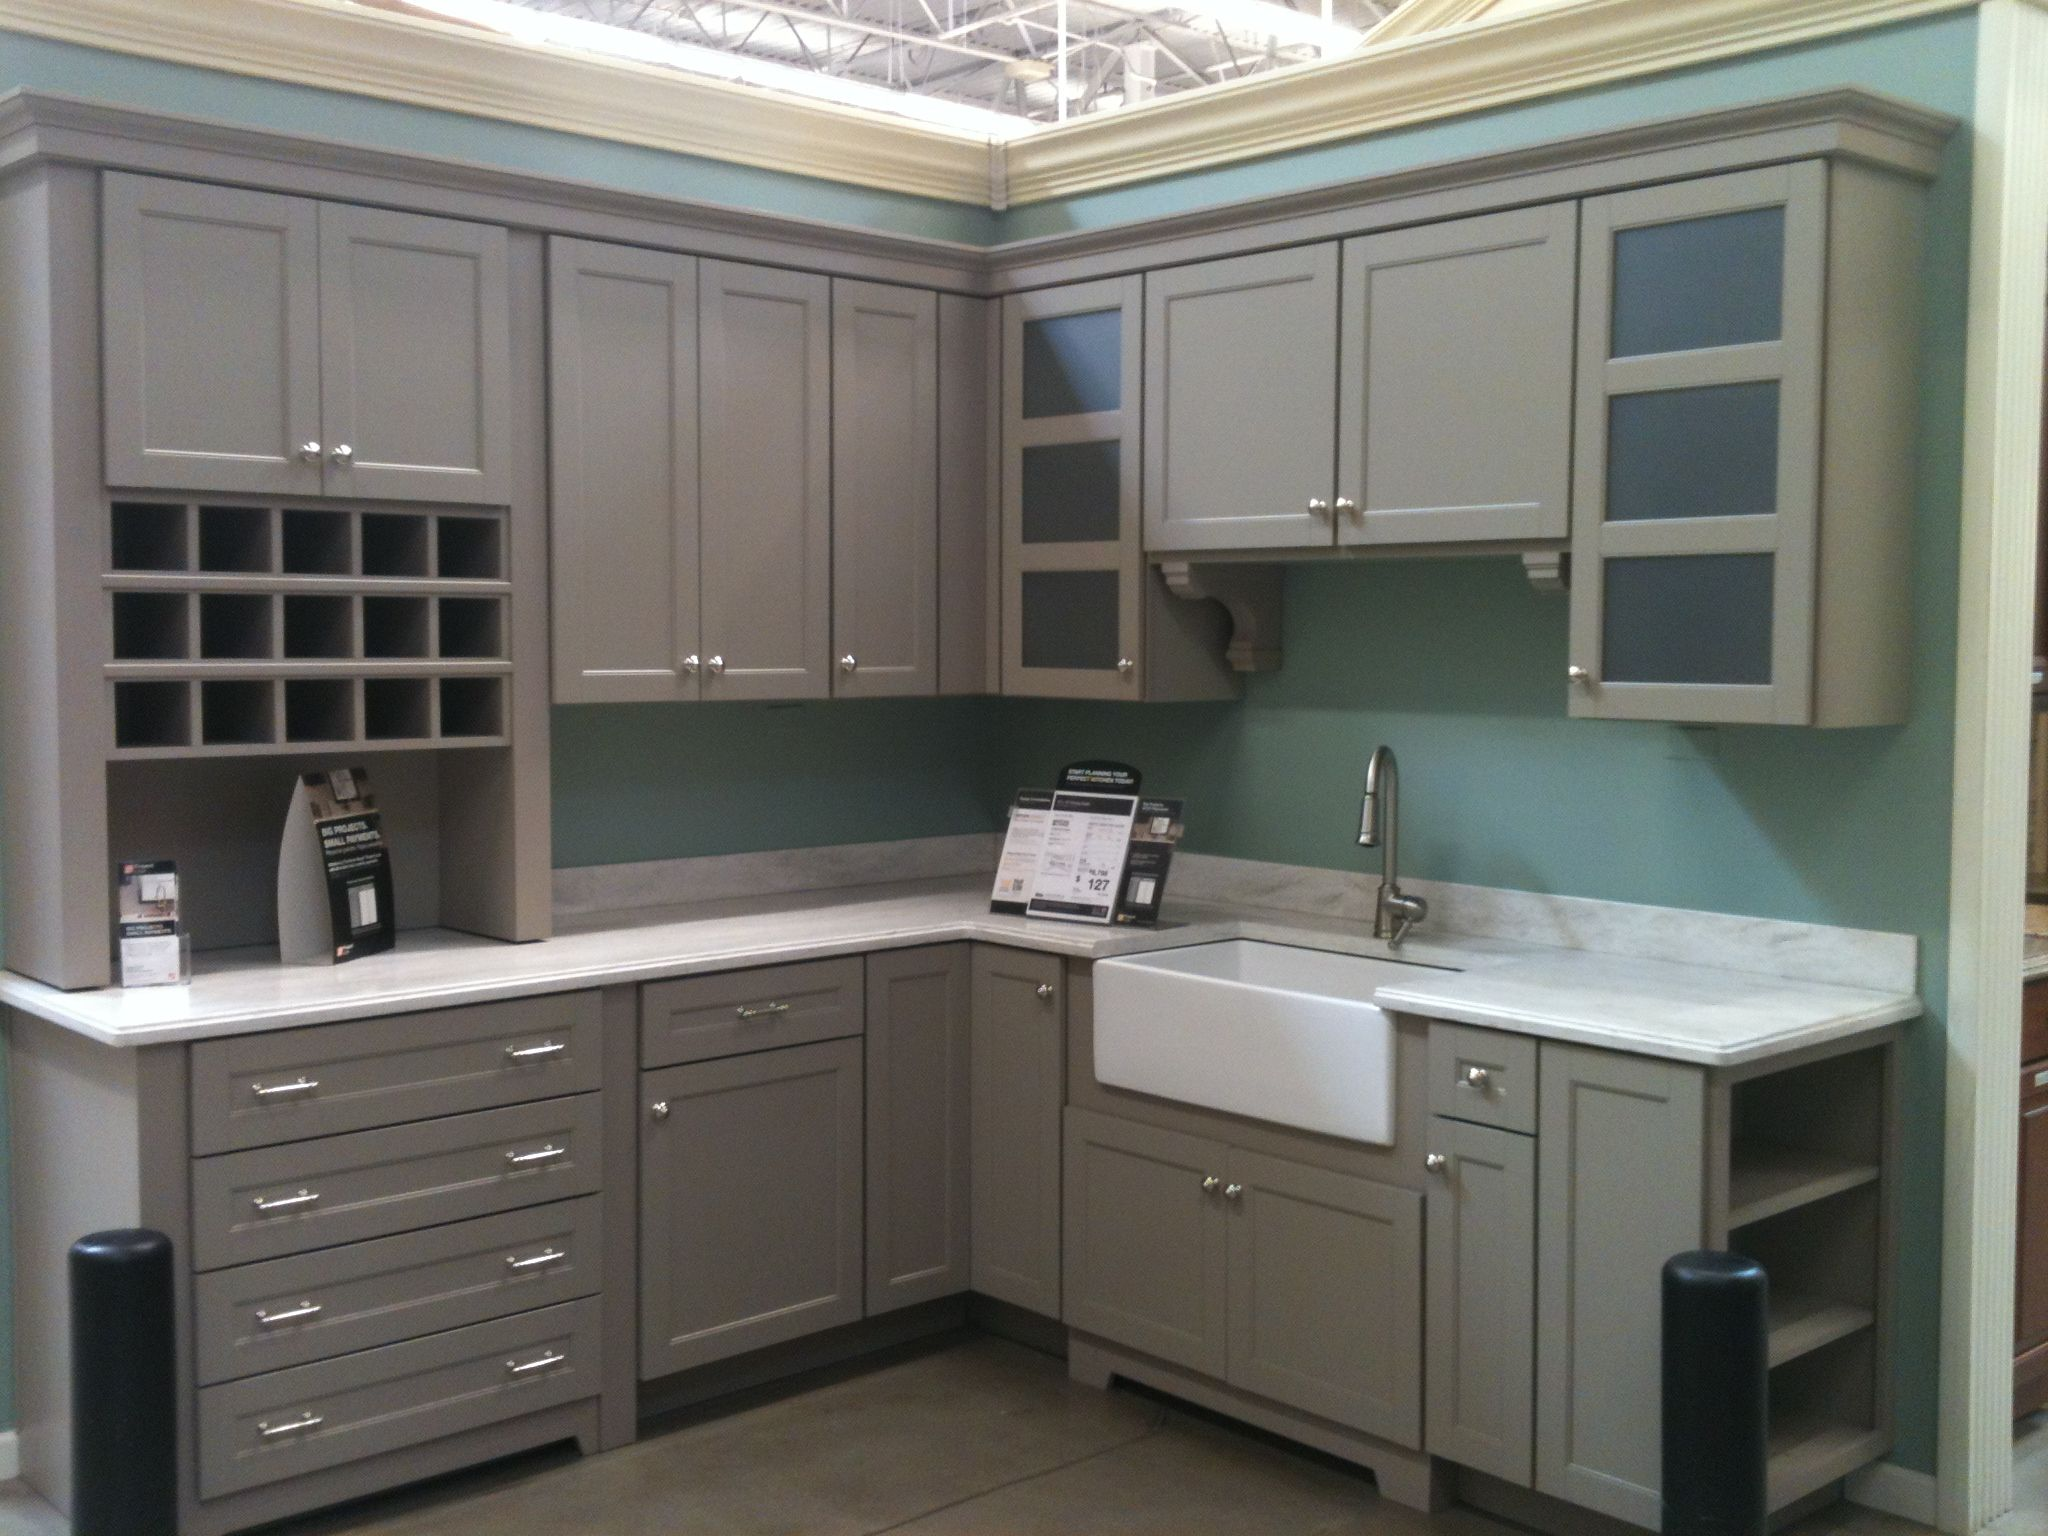 kitchen remodel home depot Martha Stewart Cabinets from Home Depot Like the shelves on the end